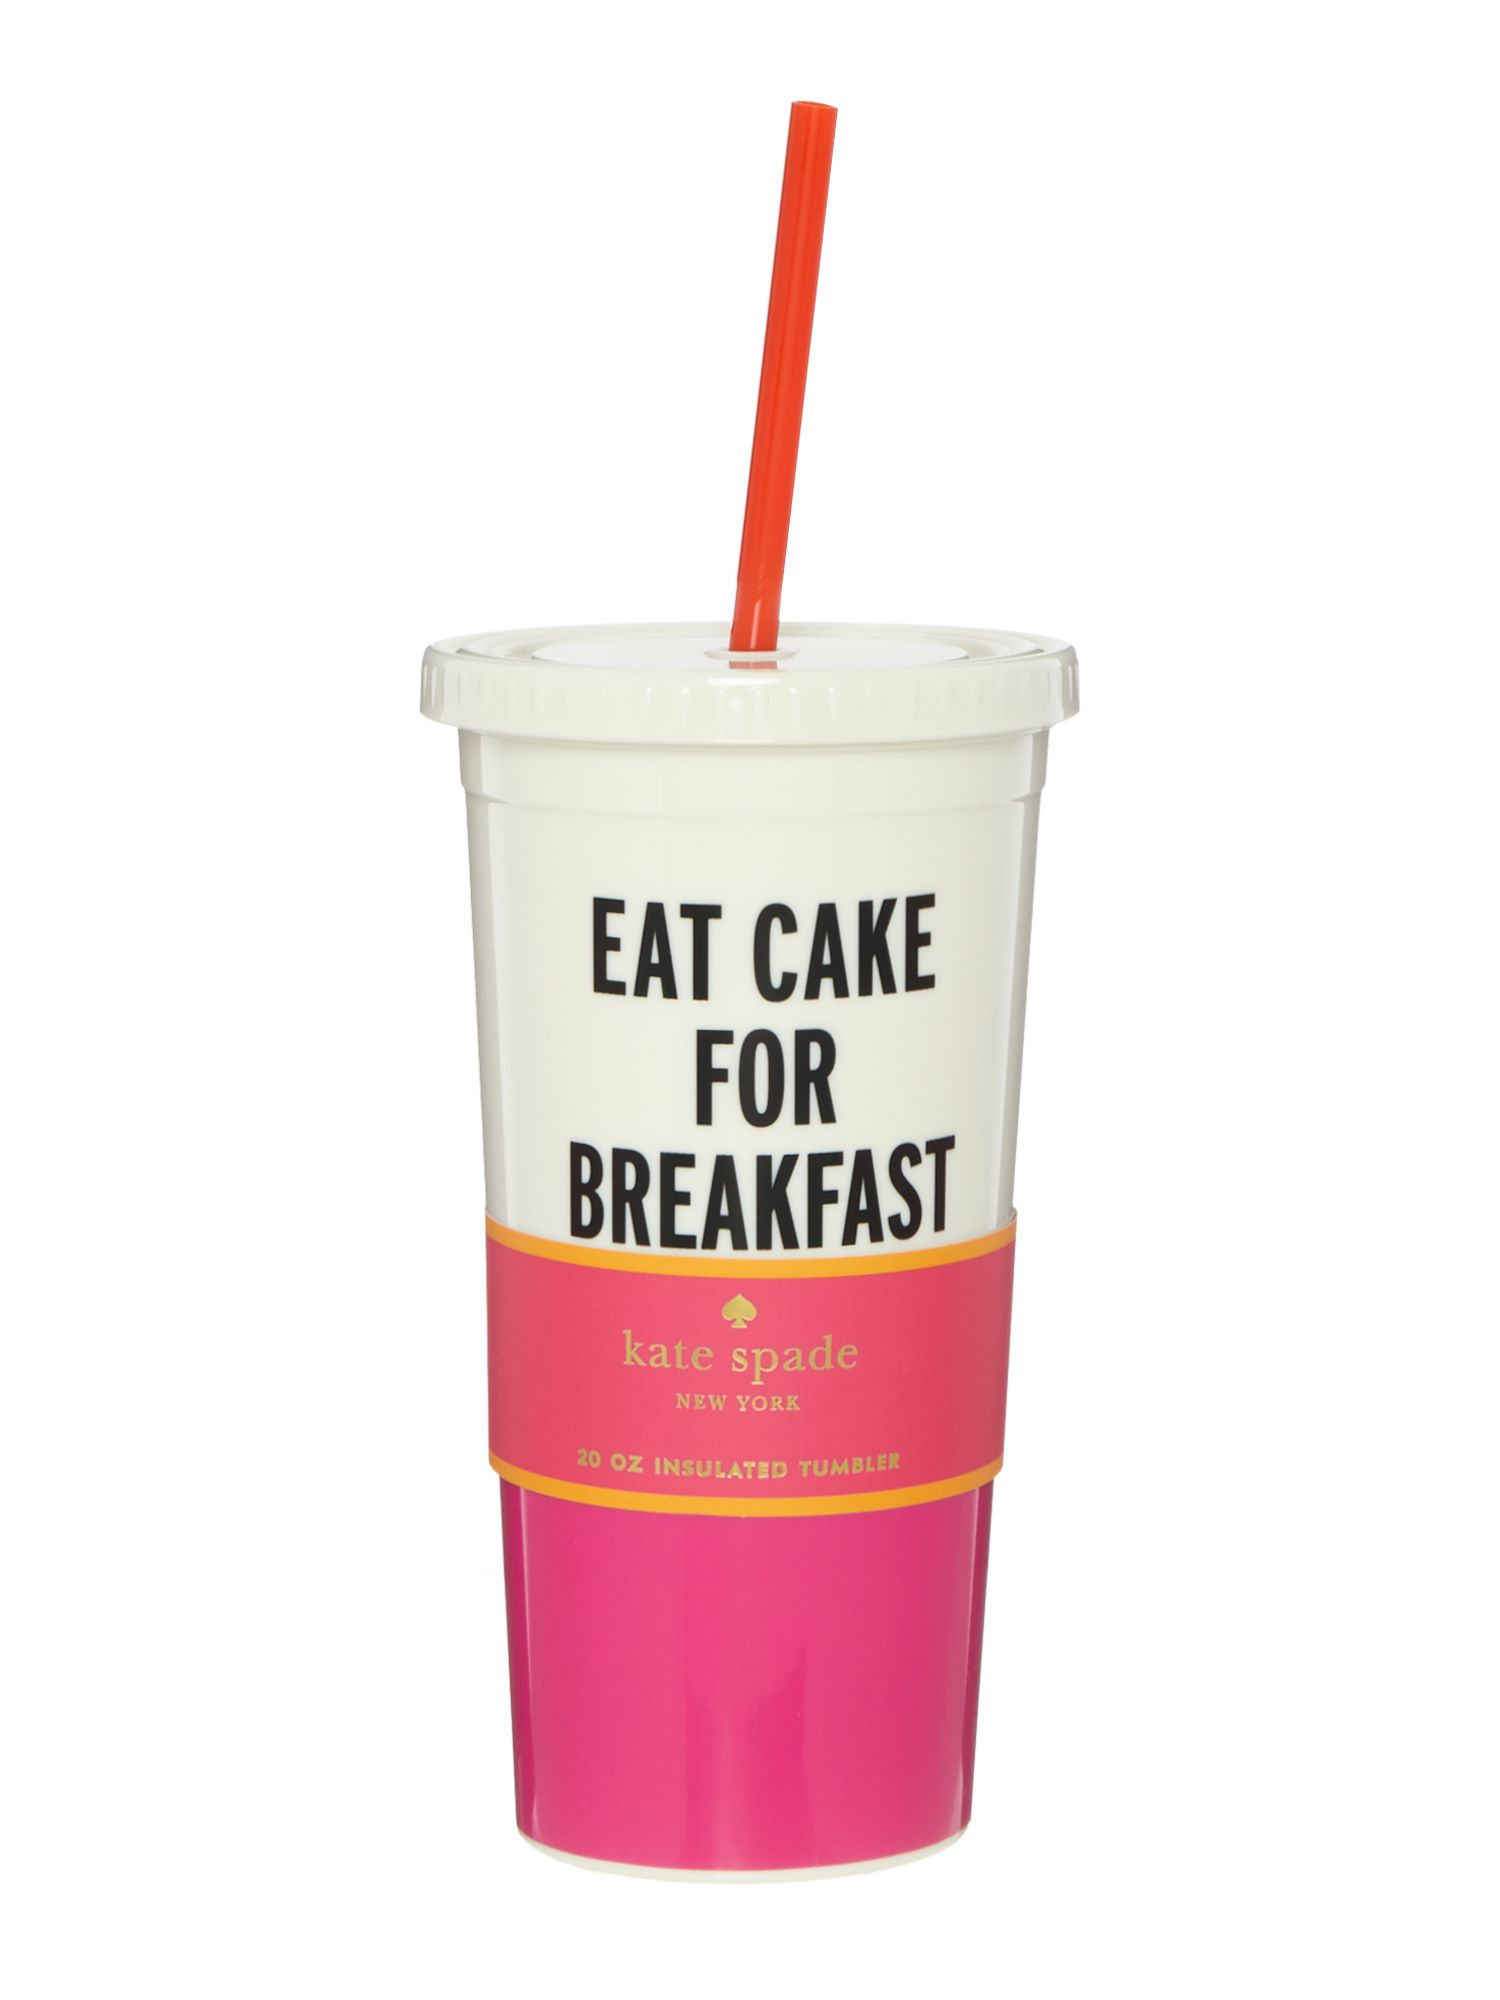 Image of Kate Spade New York Eat cake for breakfast tumbler with straw